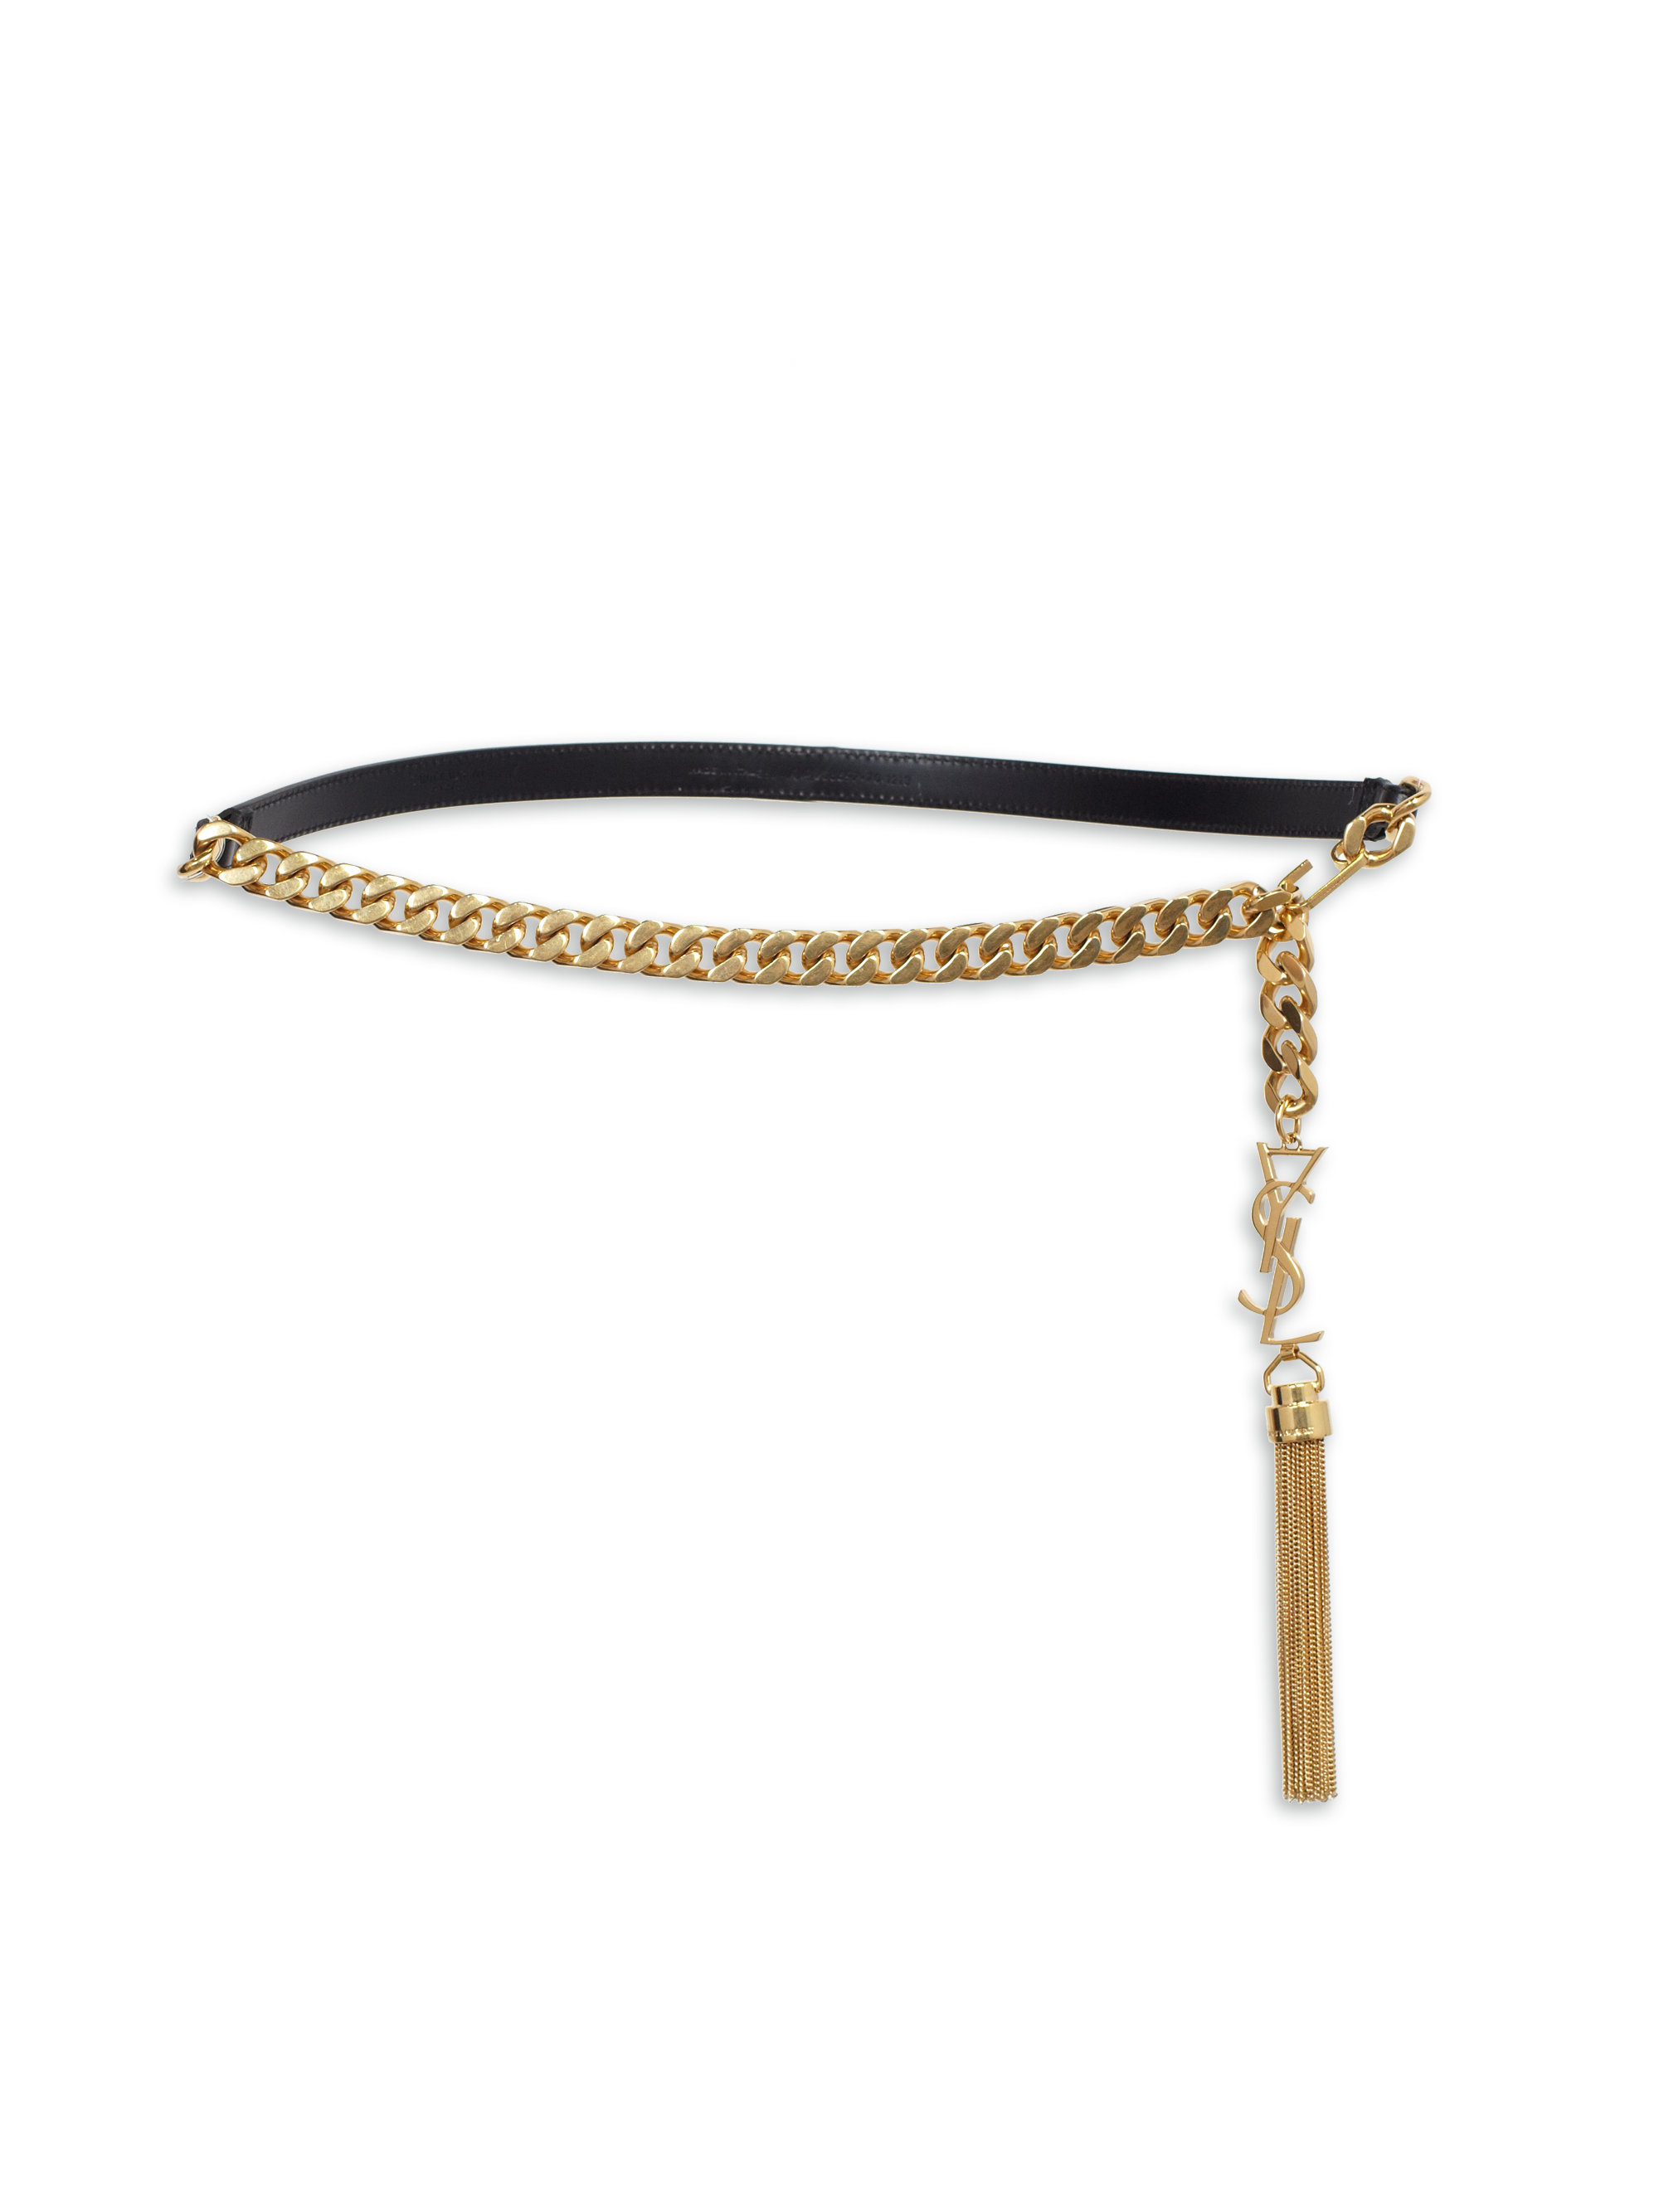 Lyst Saint Laurent Ysl Leather Chain Belt In Metallic